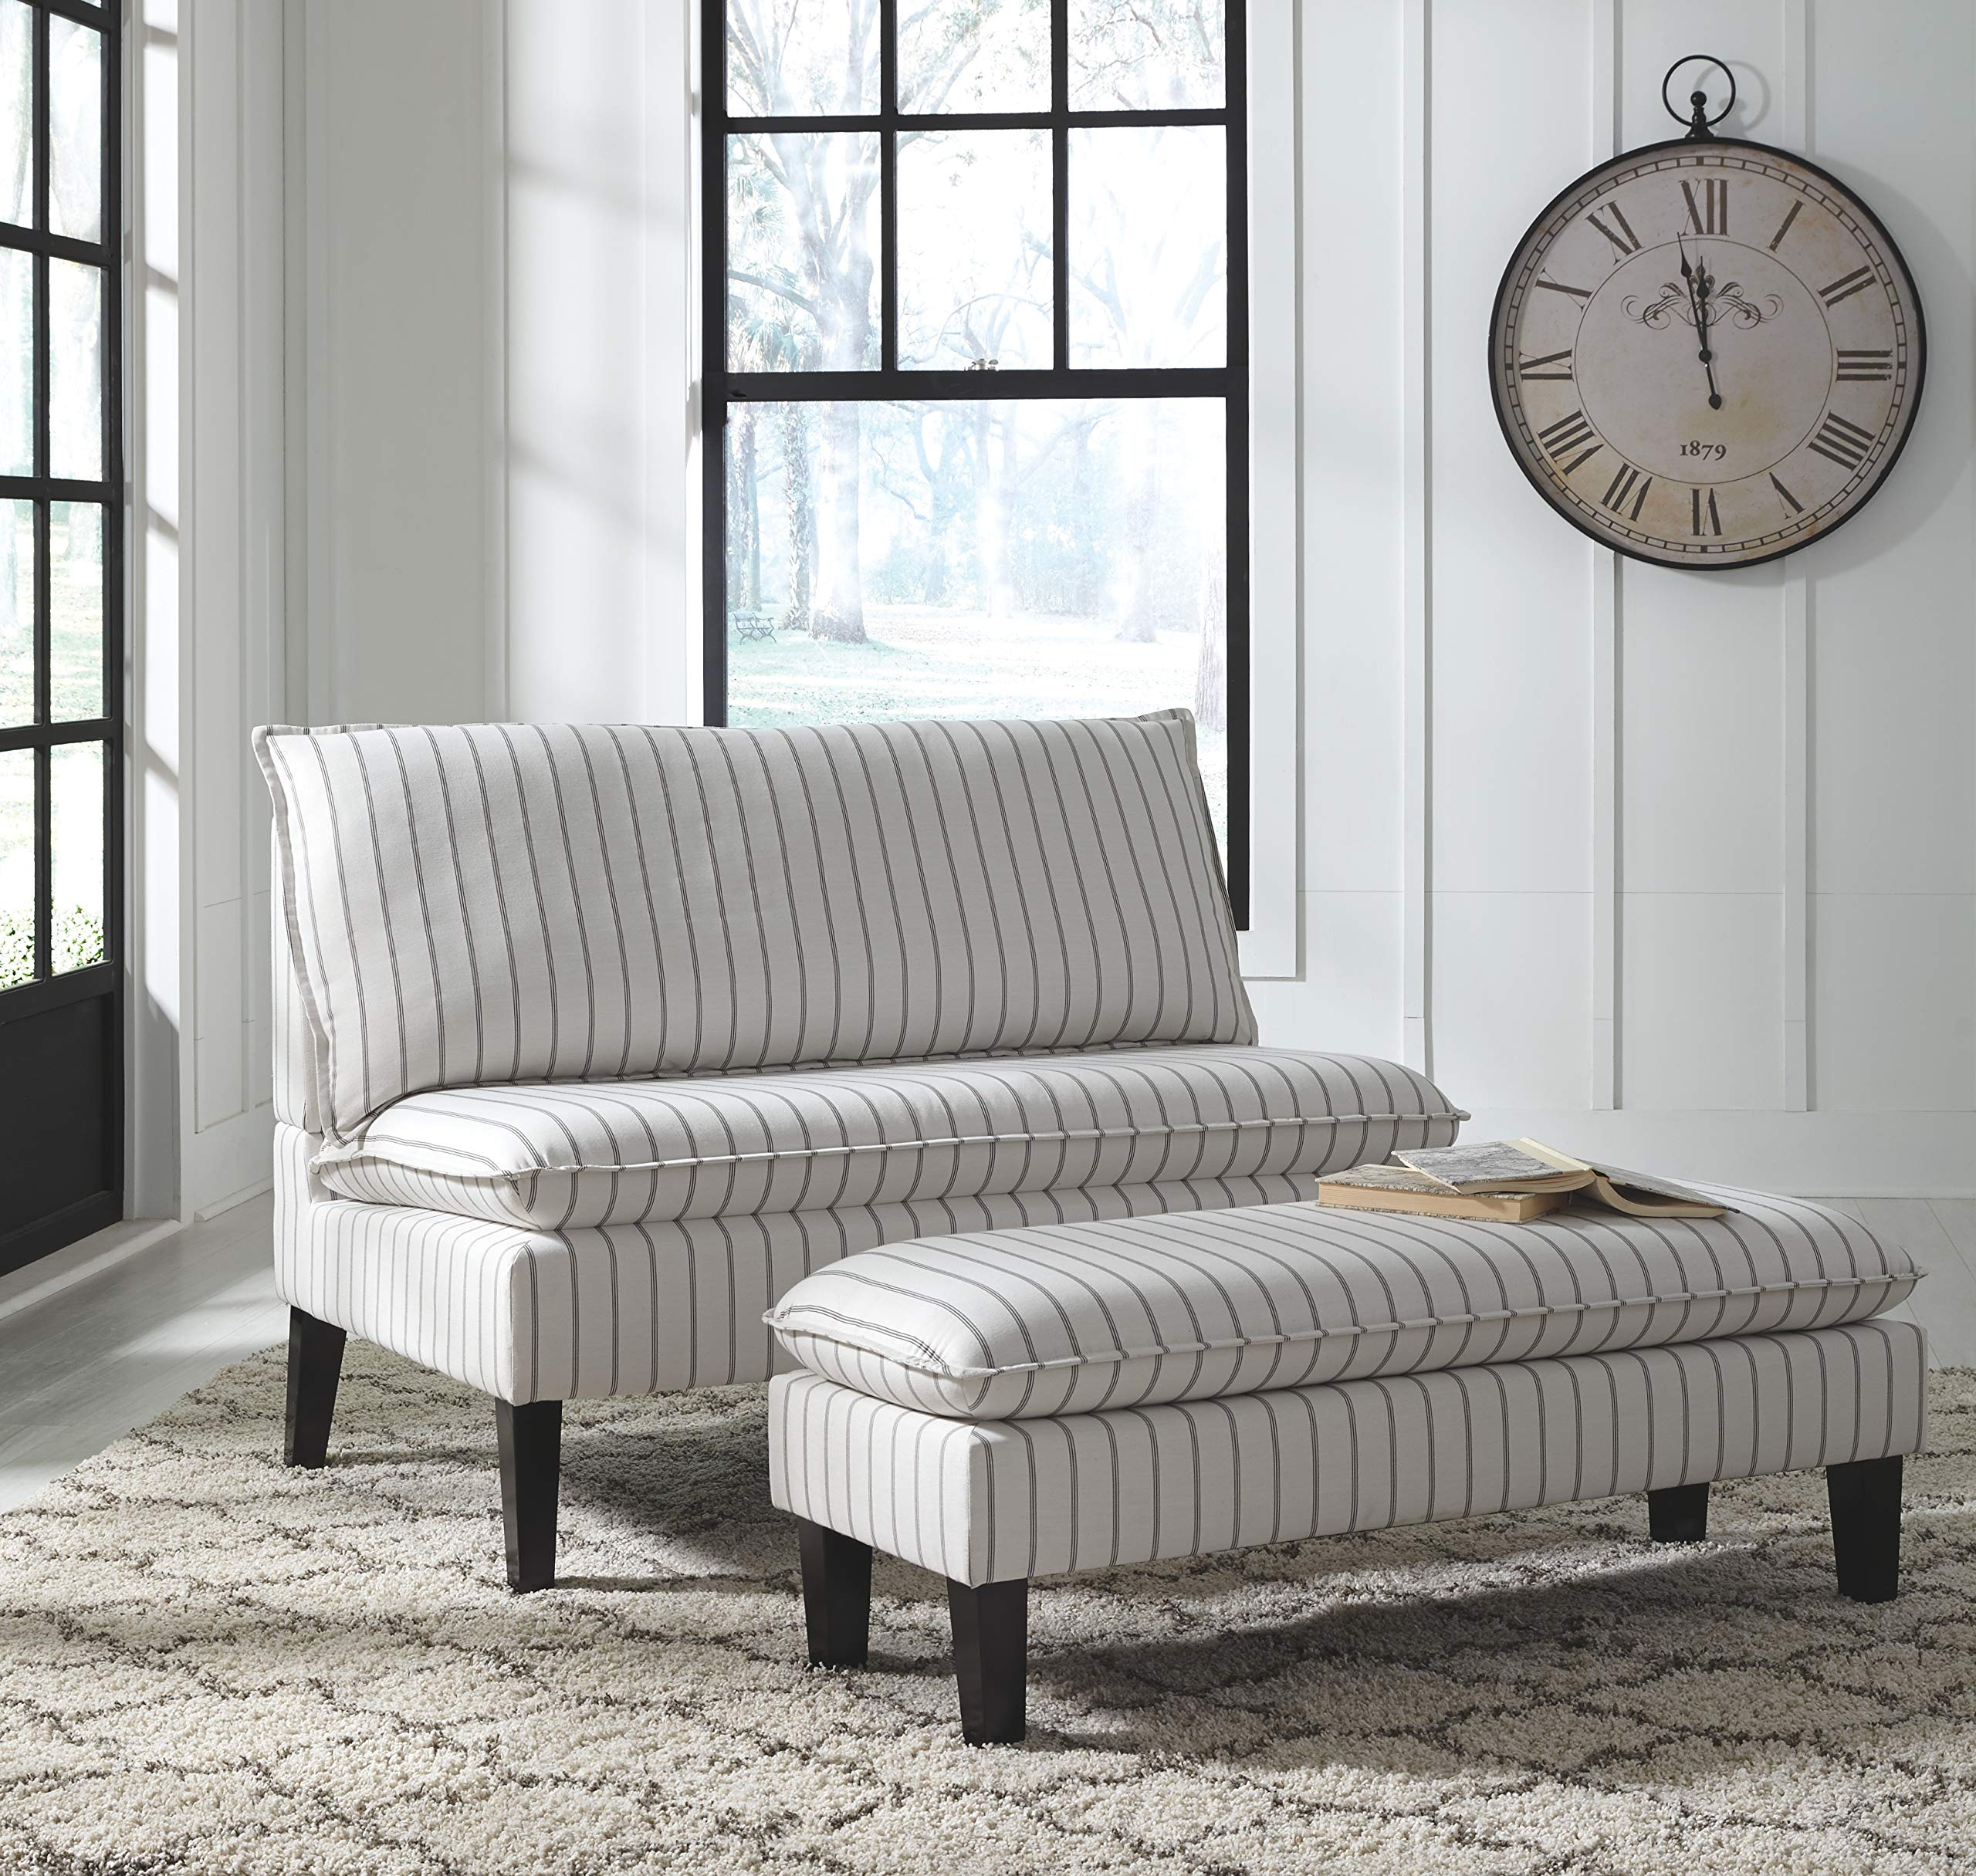 Signature Design by Ashley A3000112 Arrowrock Accent Bench, Settee by Signature Design by Ashley (Image #3)